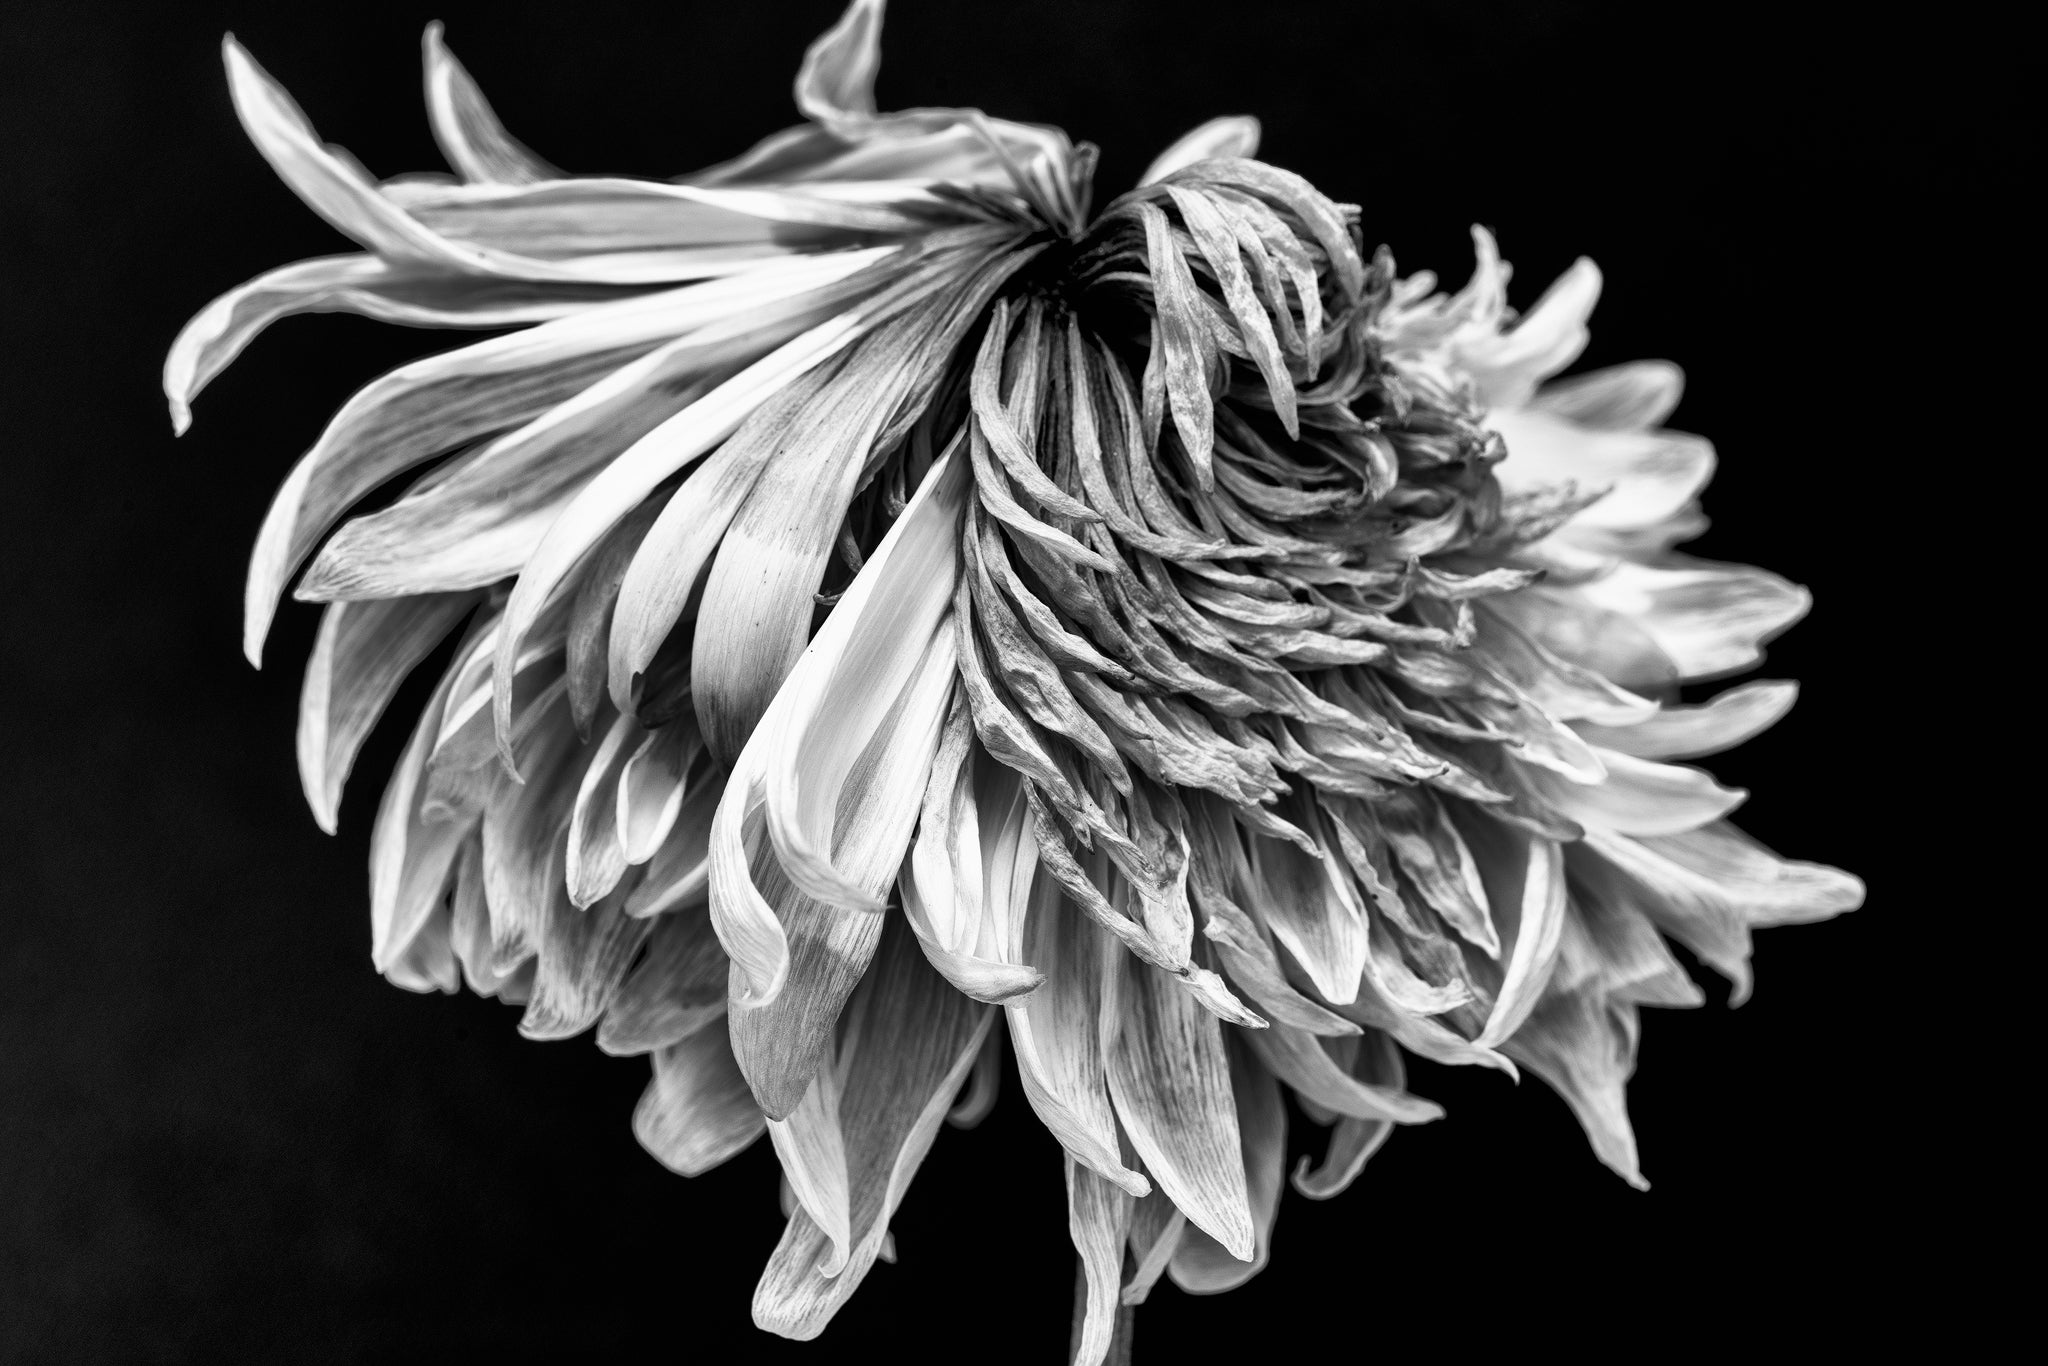 Dead Flower with Smashed Petals: Black and White Photograph by Keith Dotson. Buy a fine art print.